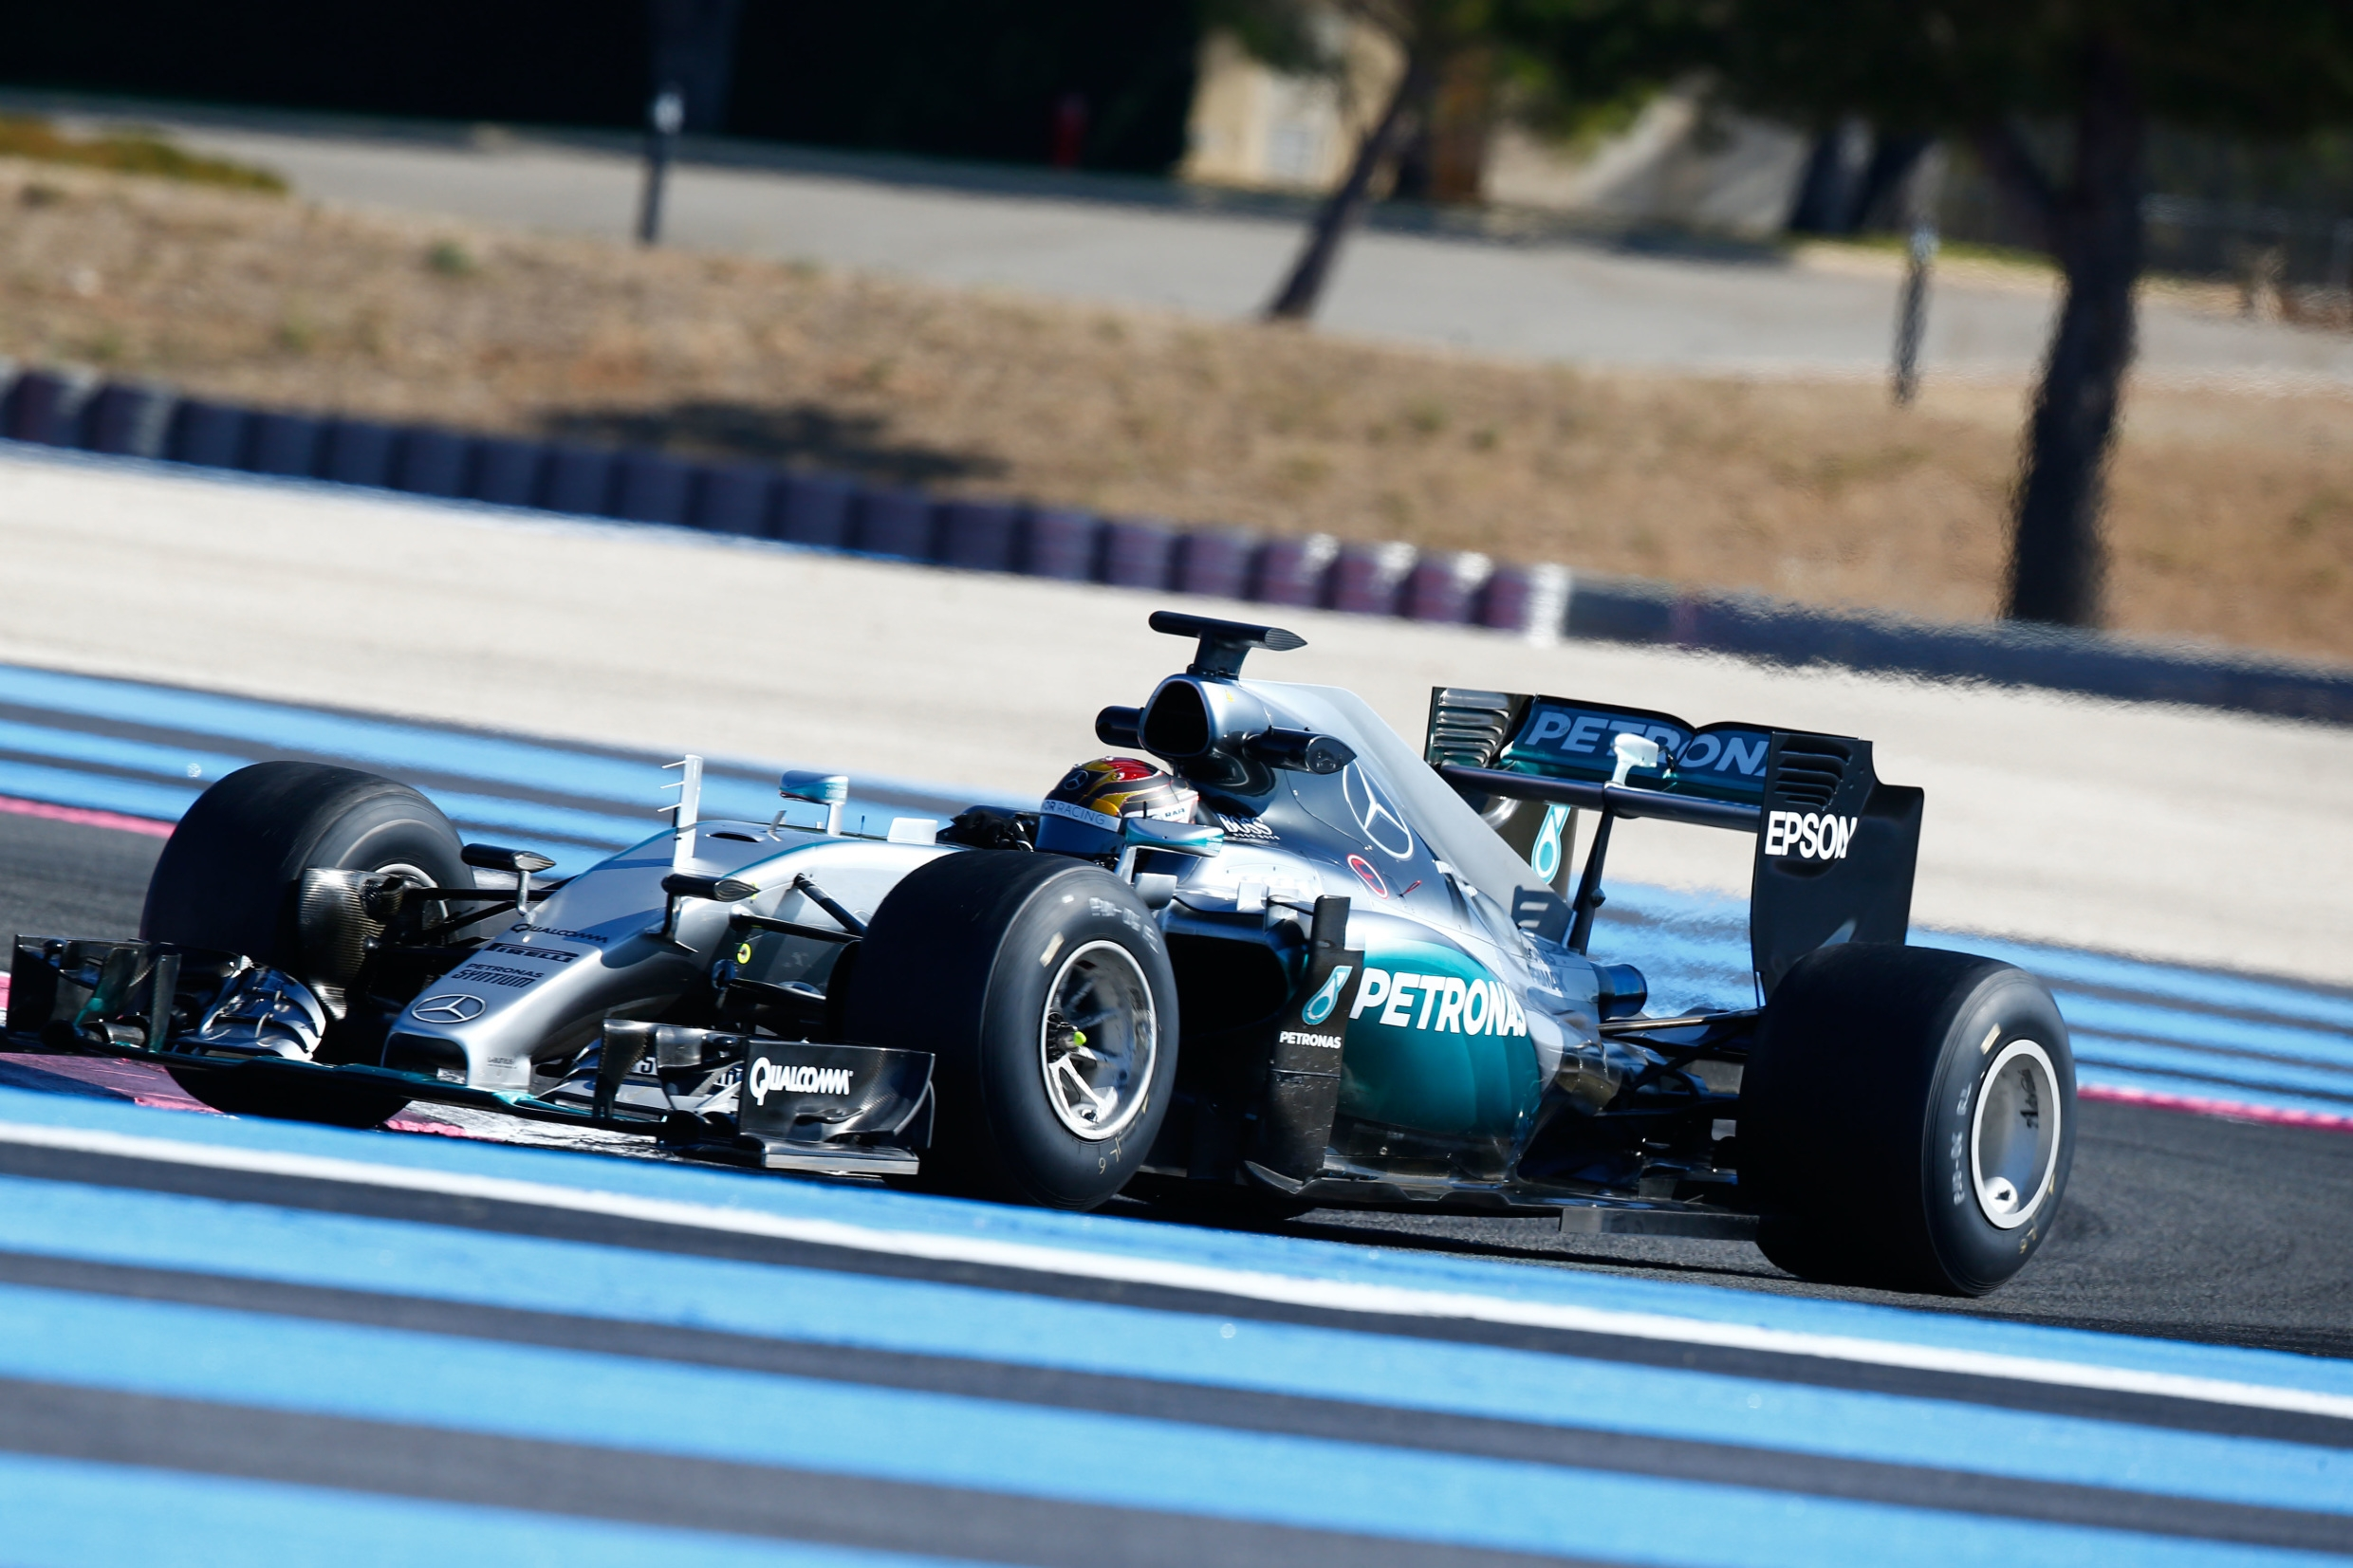 Hamilton heats up French Grand Prix